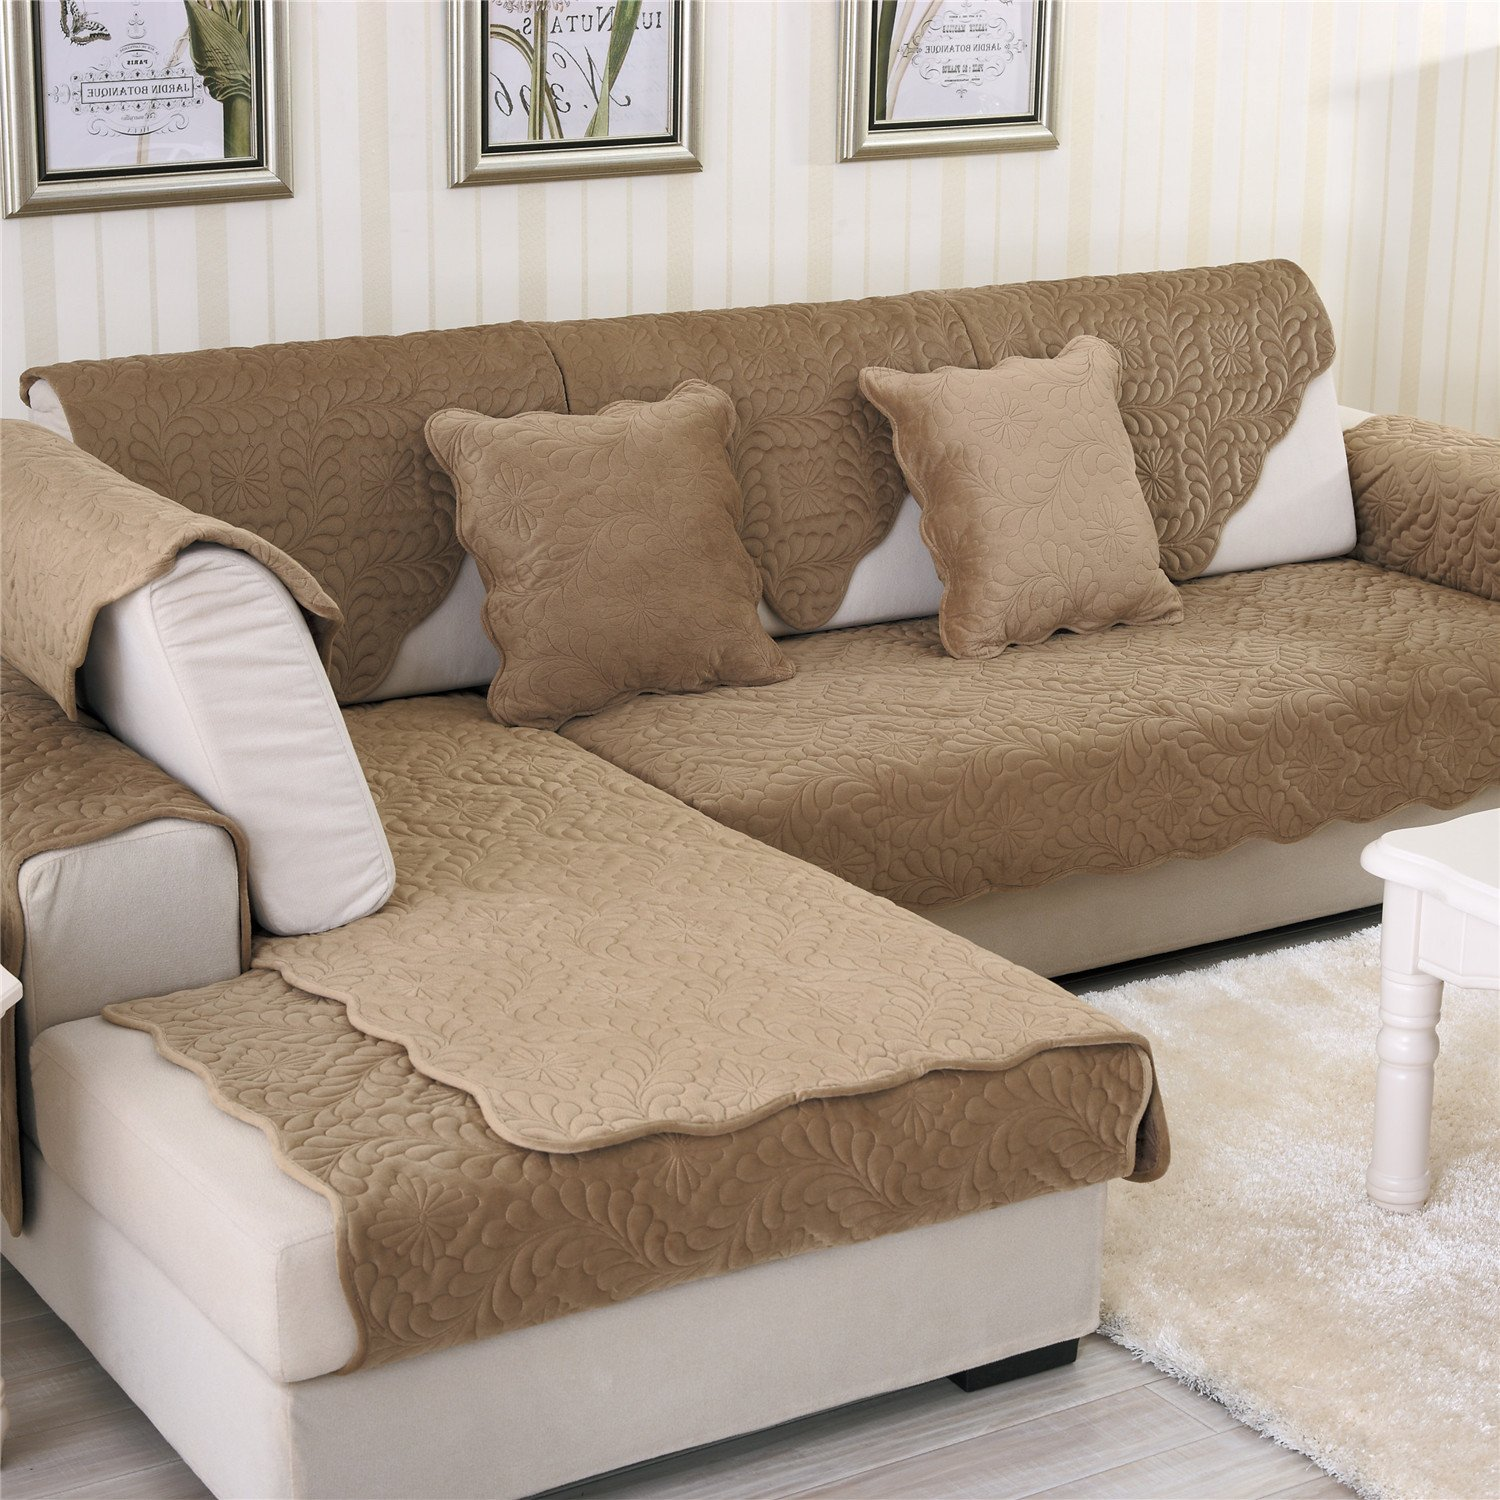 OstepDecor Soft Petris Quilted Sofa Furniture Protector Couch SlipCover for Pet Dog Children Kids   Backrest and Armrest Sold Separately   Coffee 36'' x 71'' (90 x 180cm)